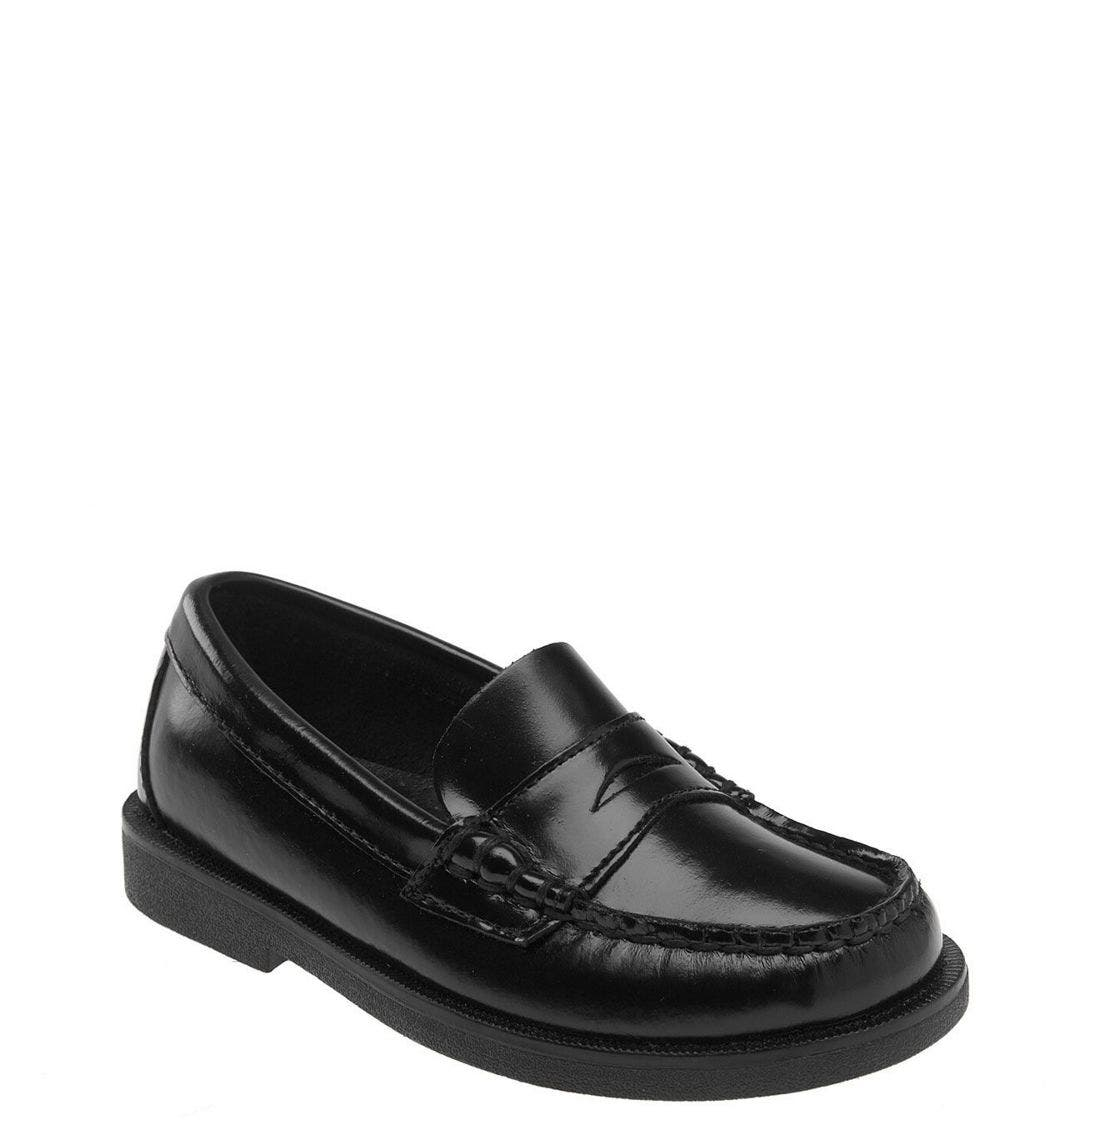 SPERRY KIDS,                             'Colton' Loafer,                             Main thumbnail 1, color,                             BLACK LEATHER